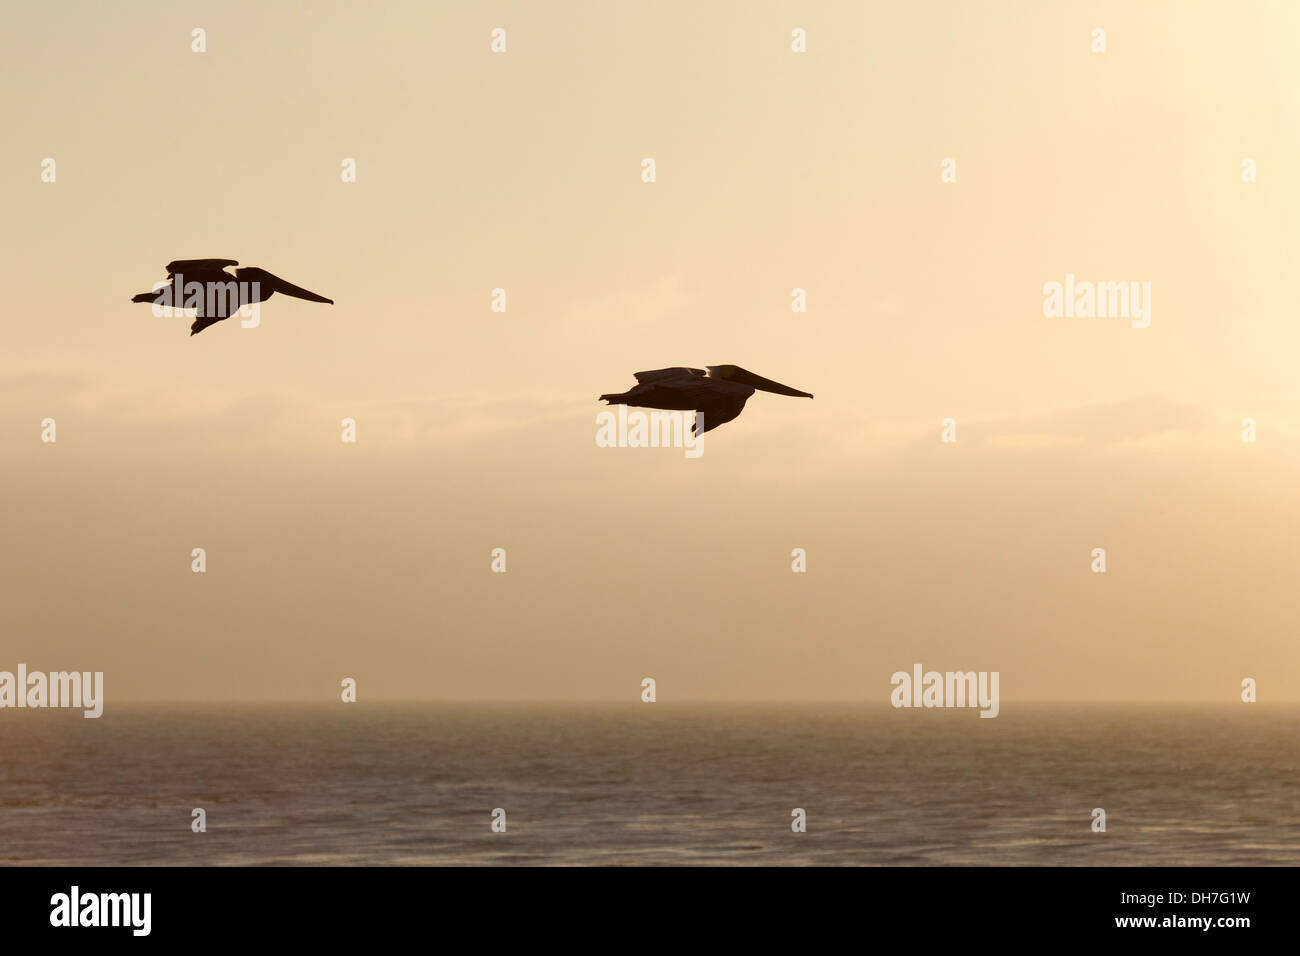 Two Brown Pelicans Cruising over the Ocean at Sunset - Stock Image